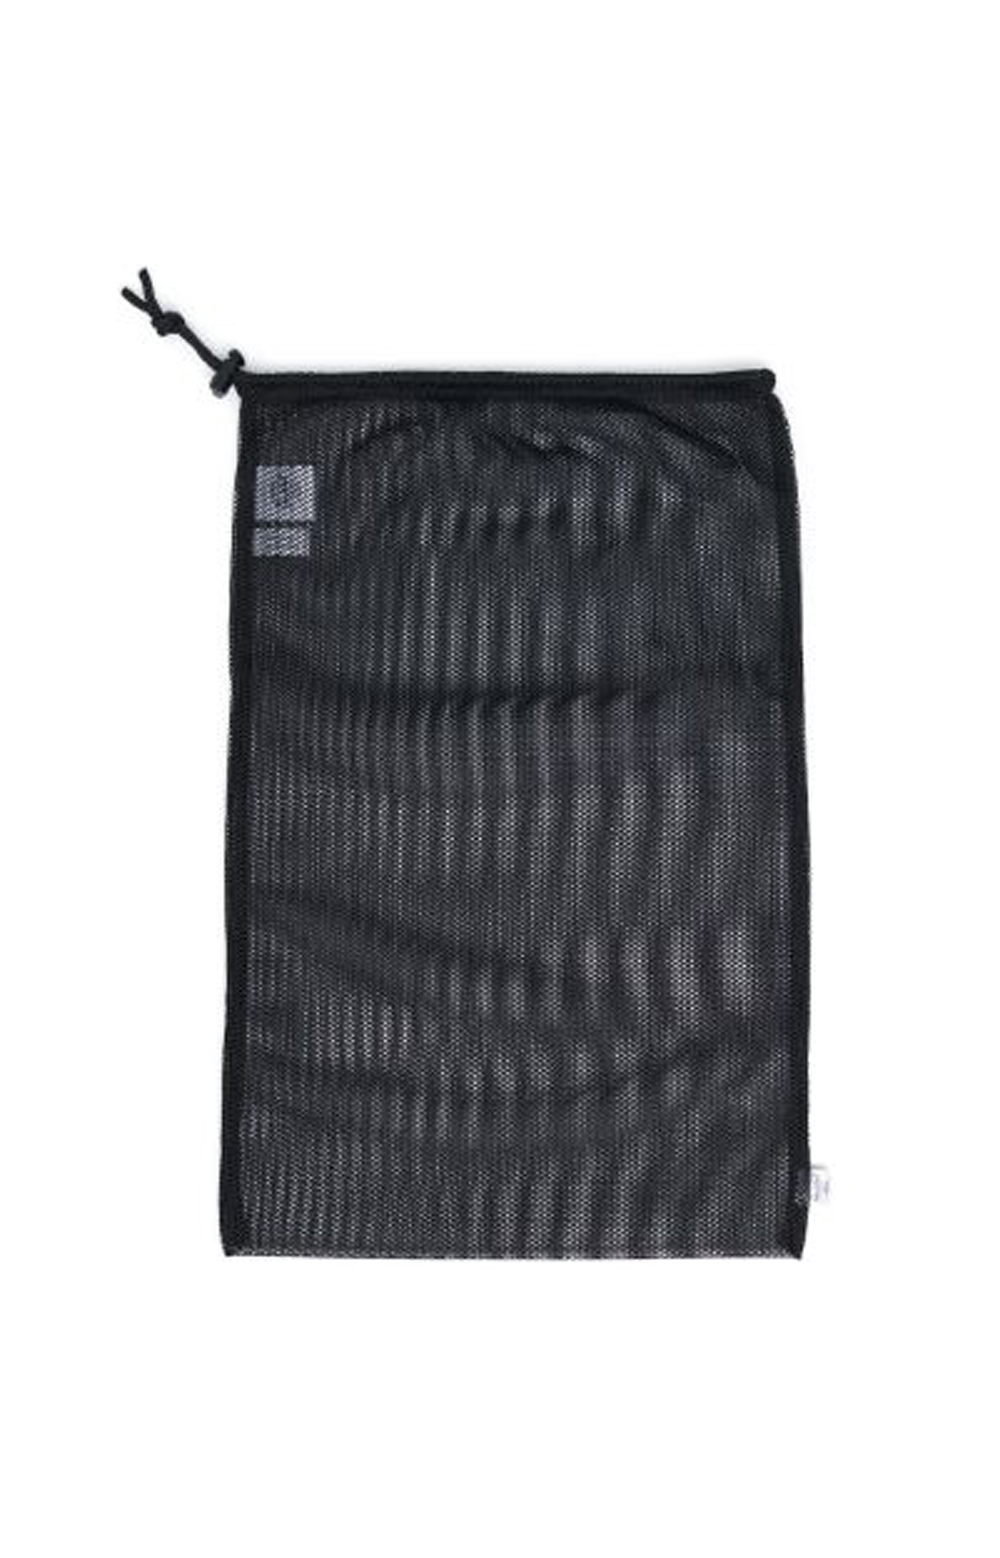 Laundry / Shoe Bag Set - Black 4